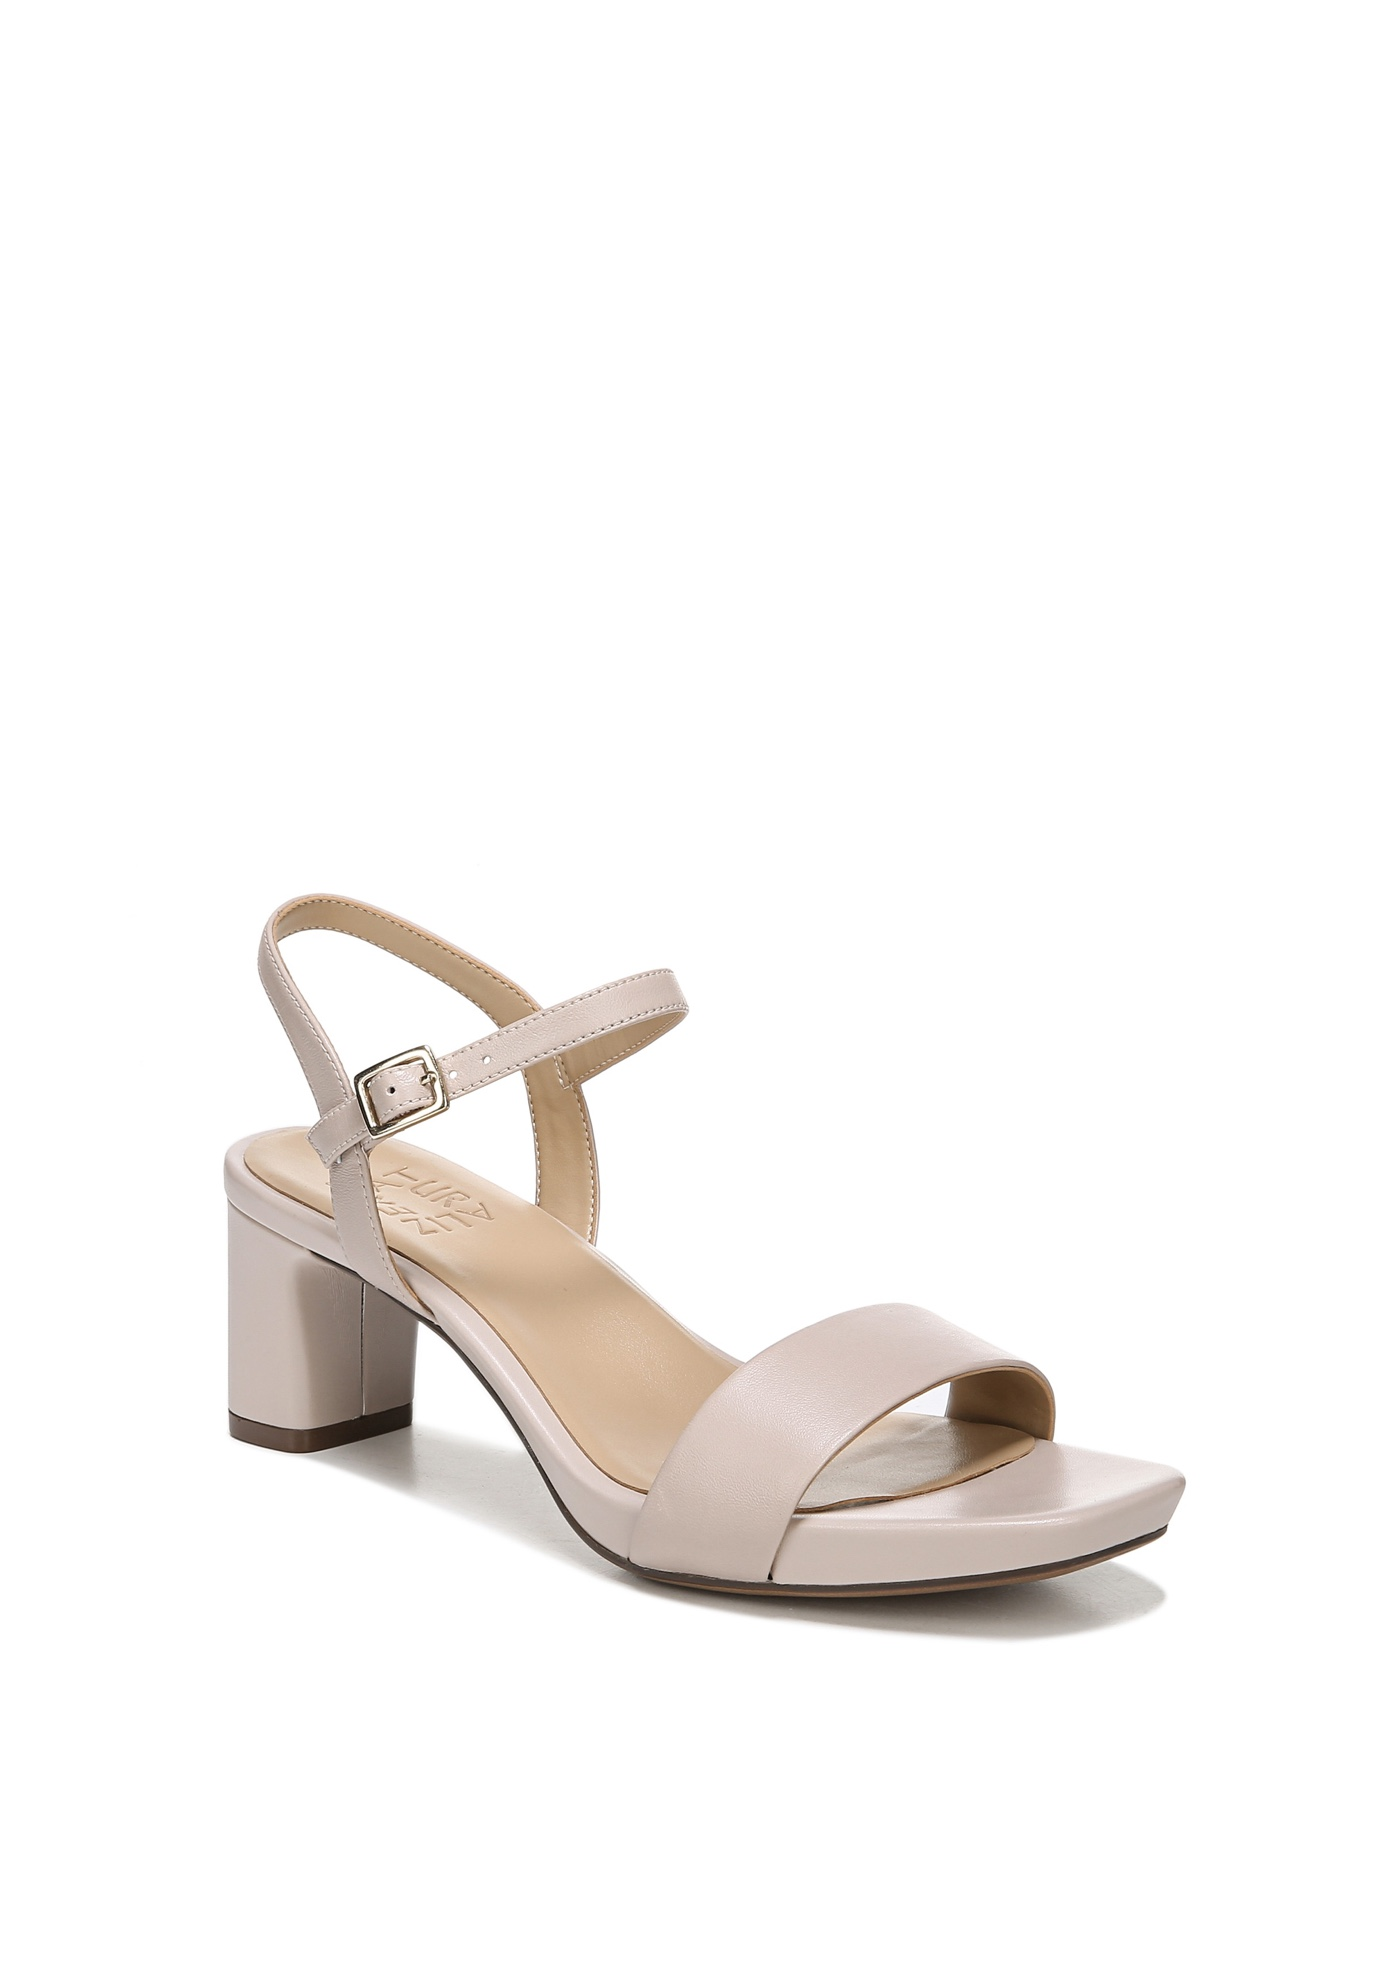 Ivy Sandal by Naturalizer,